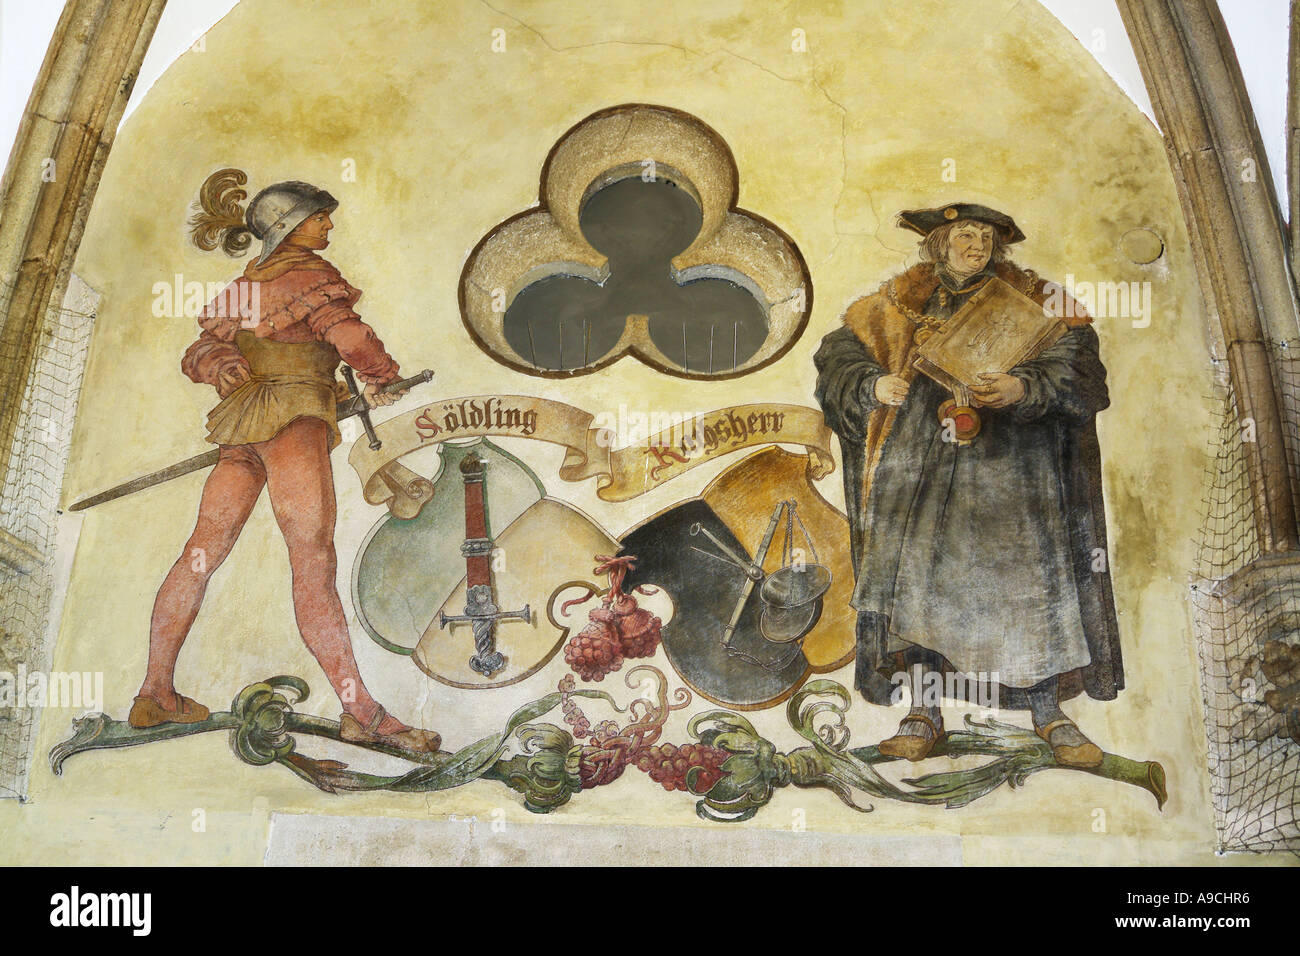 Mural painting of Martin Luther reformer - Stock Image